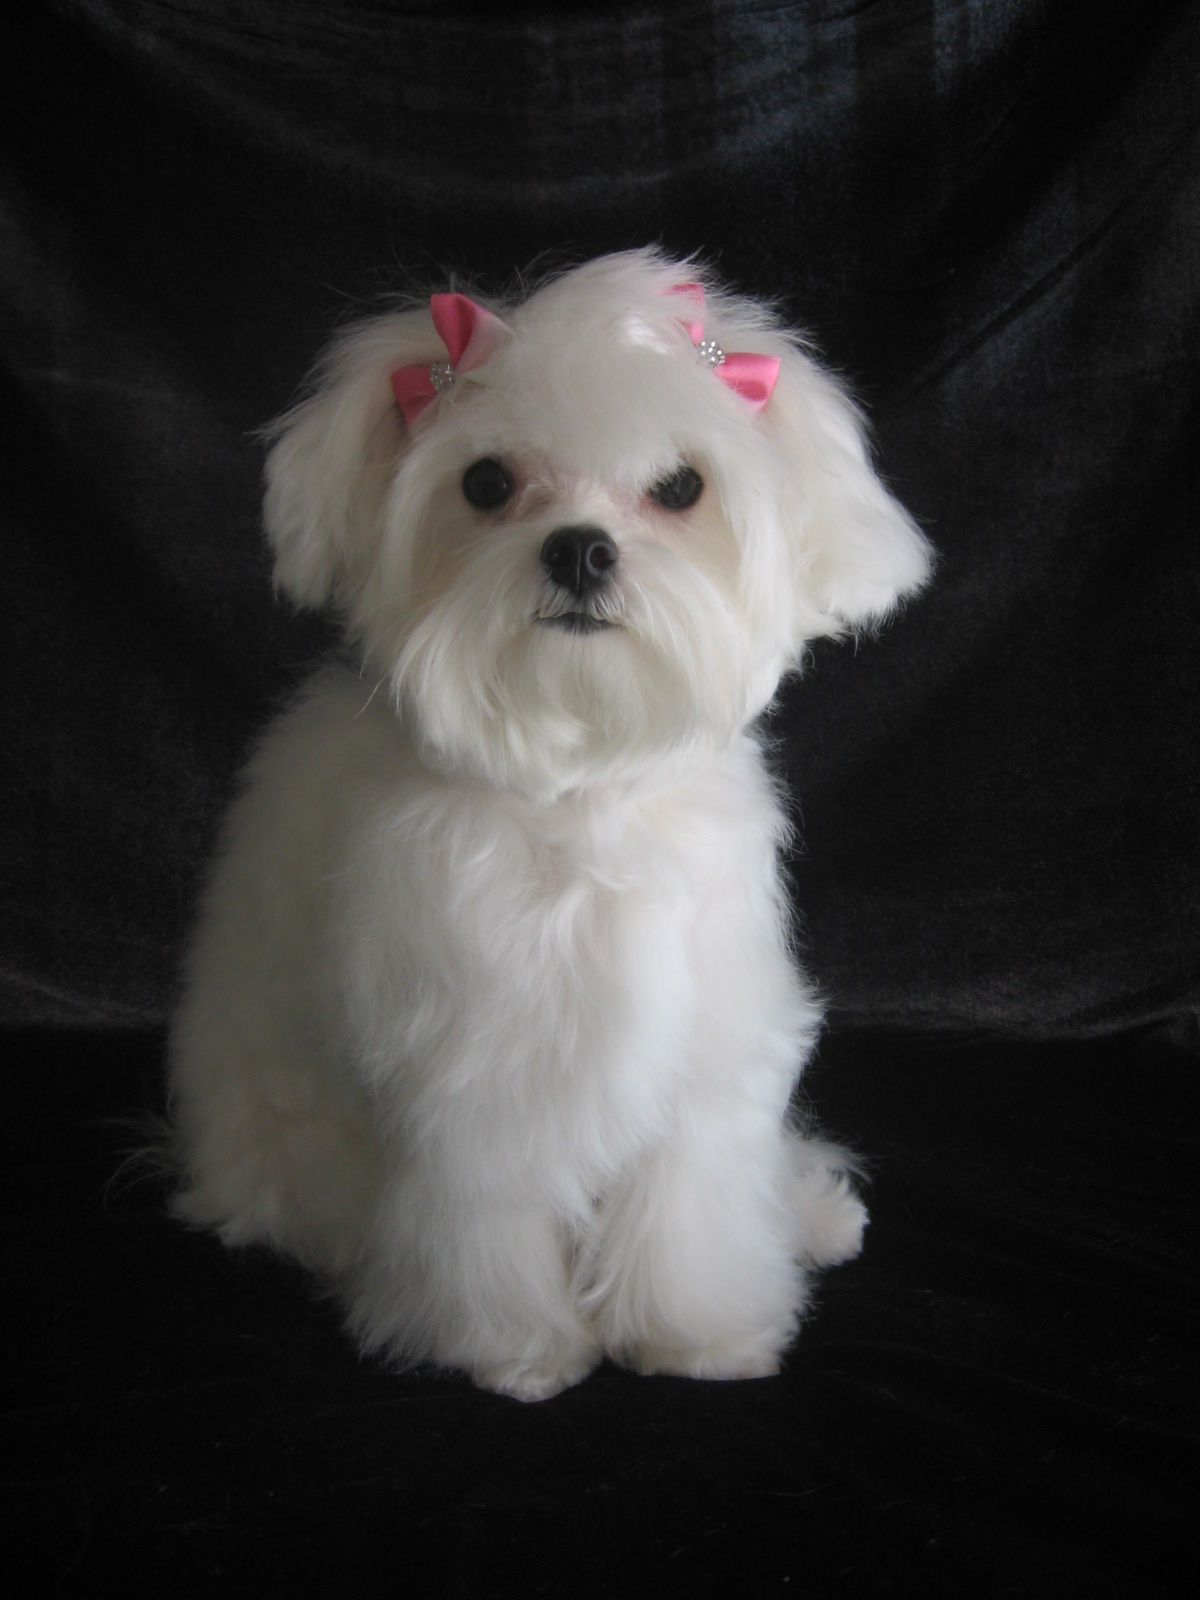 Maltese Poodle White | www.pixshark.com - Images Galleries ...